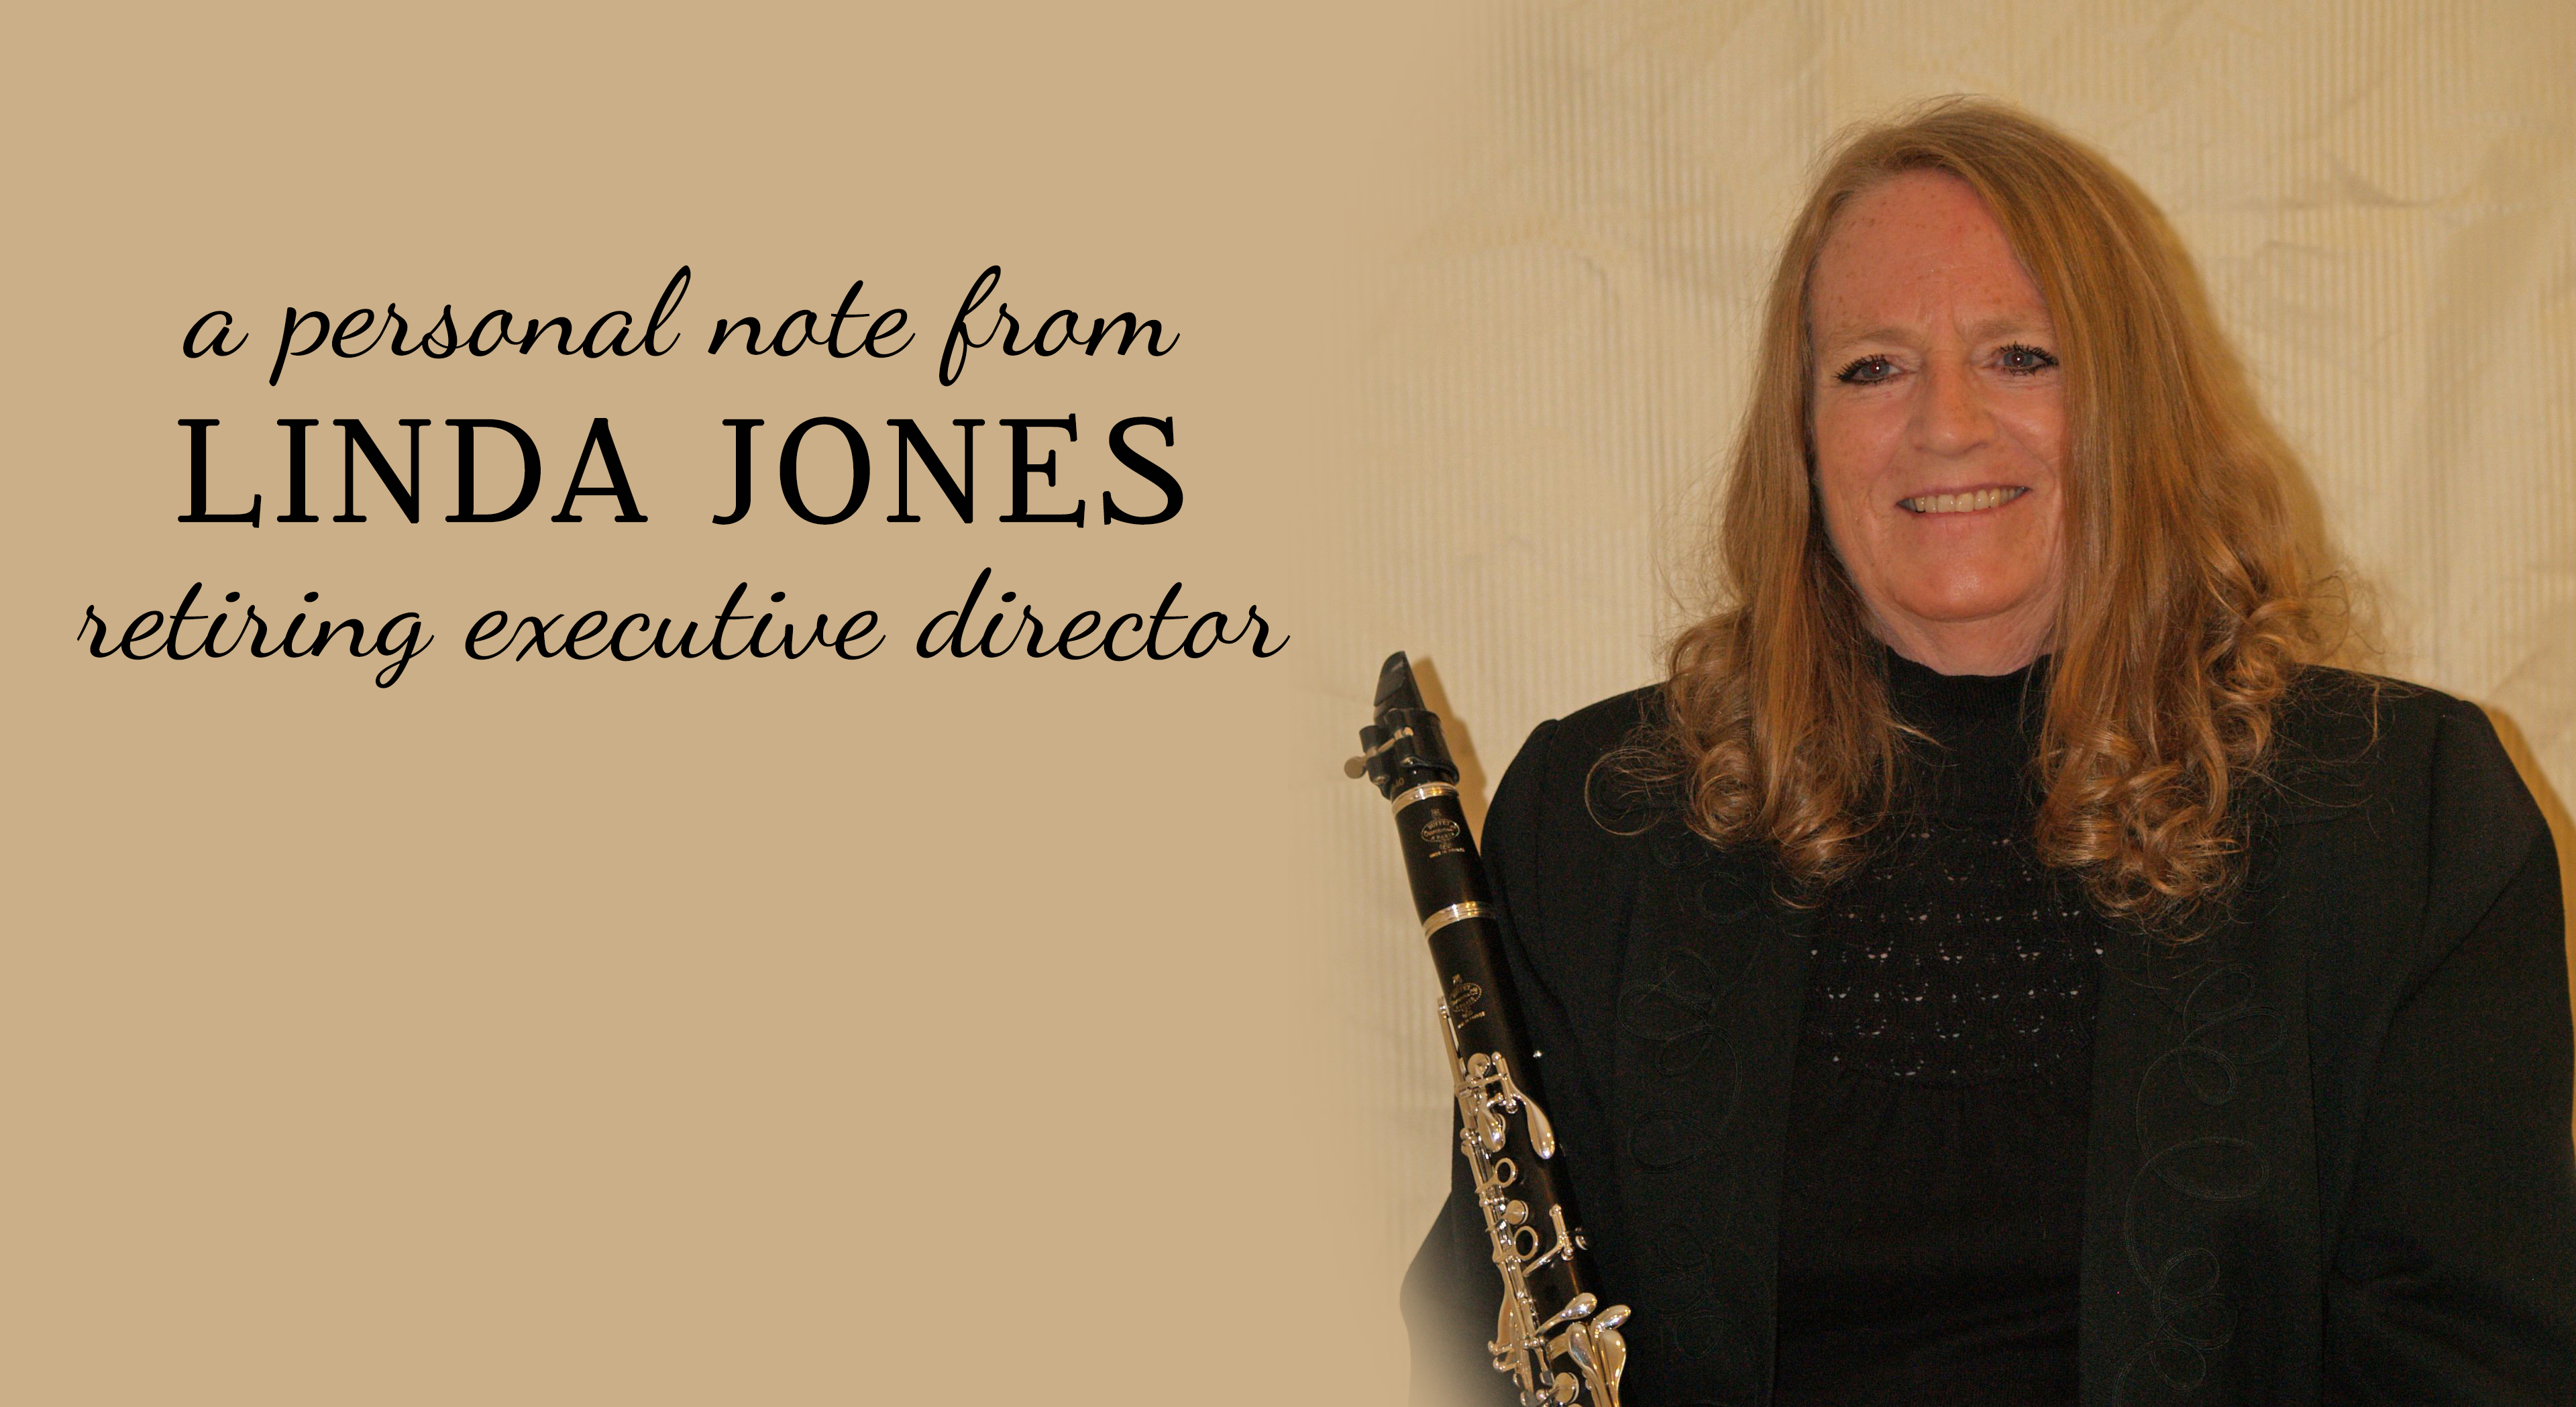 A PERSONAL NOTE FROM RETIRING EXECUTIVE DIRECTOR, LINDA JONES